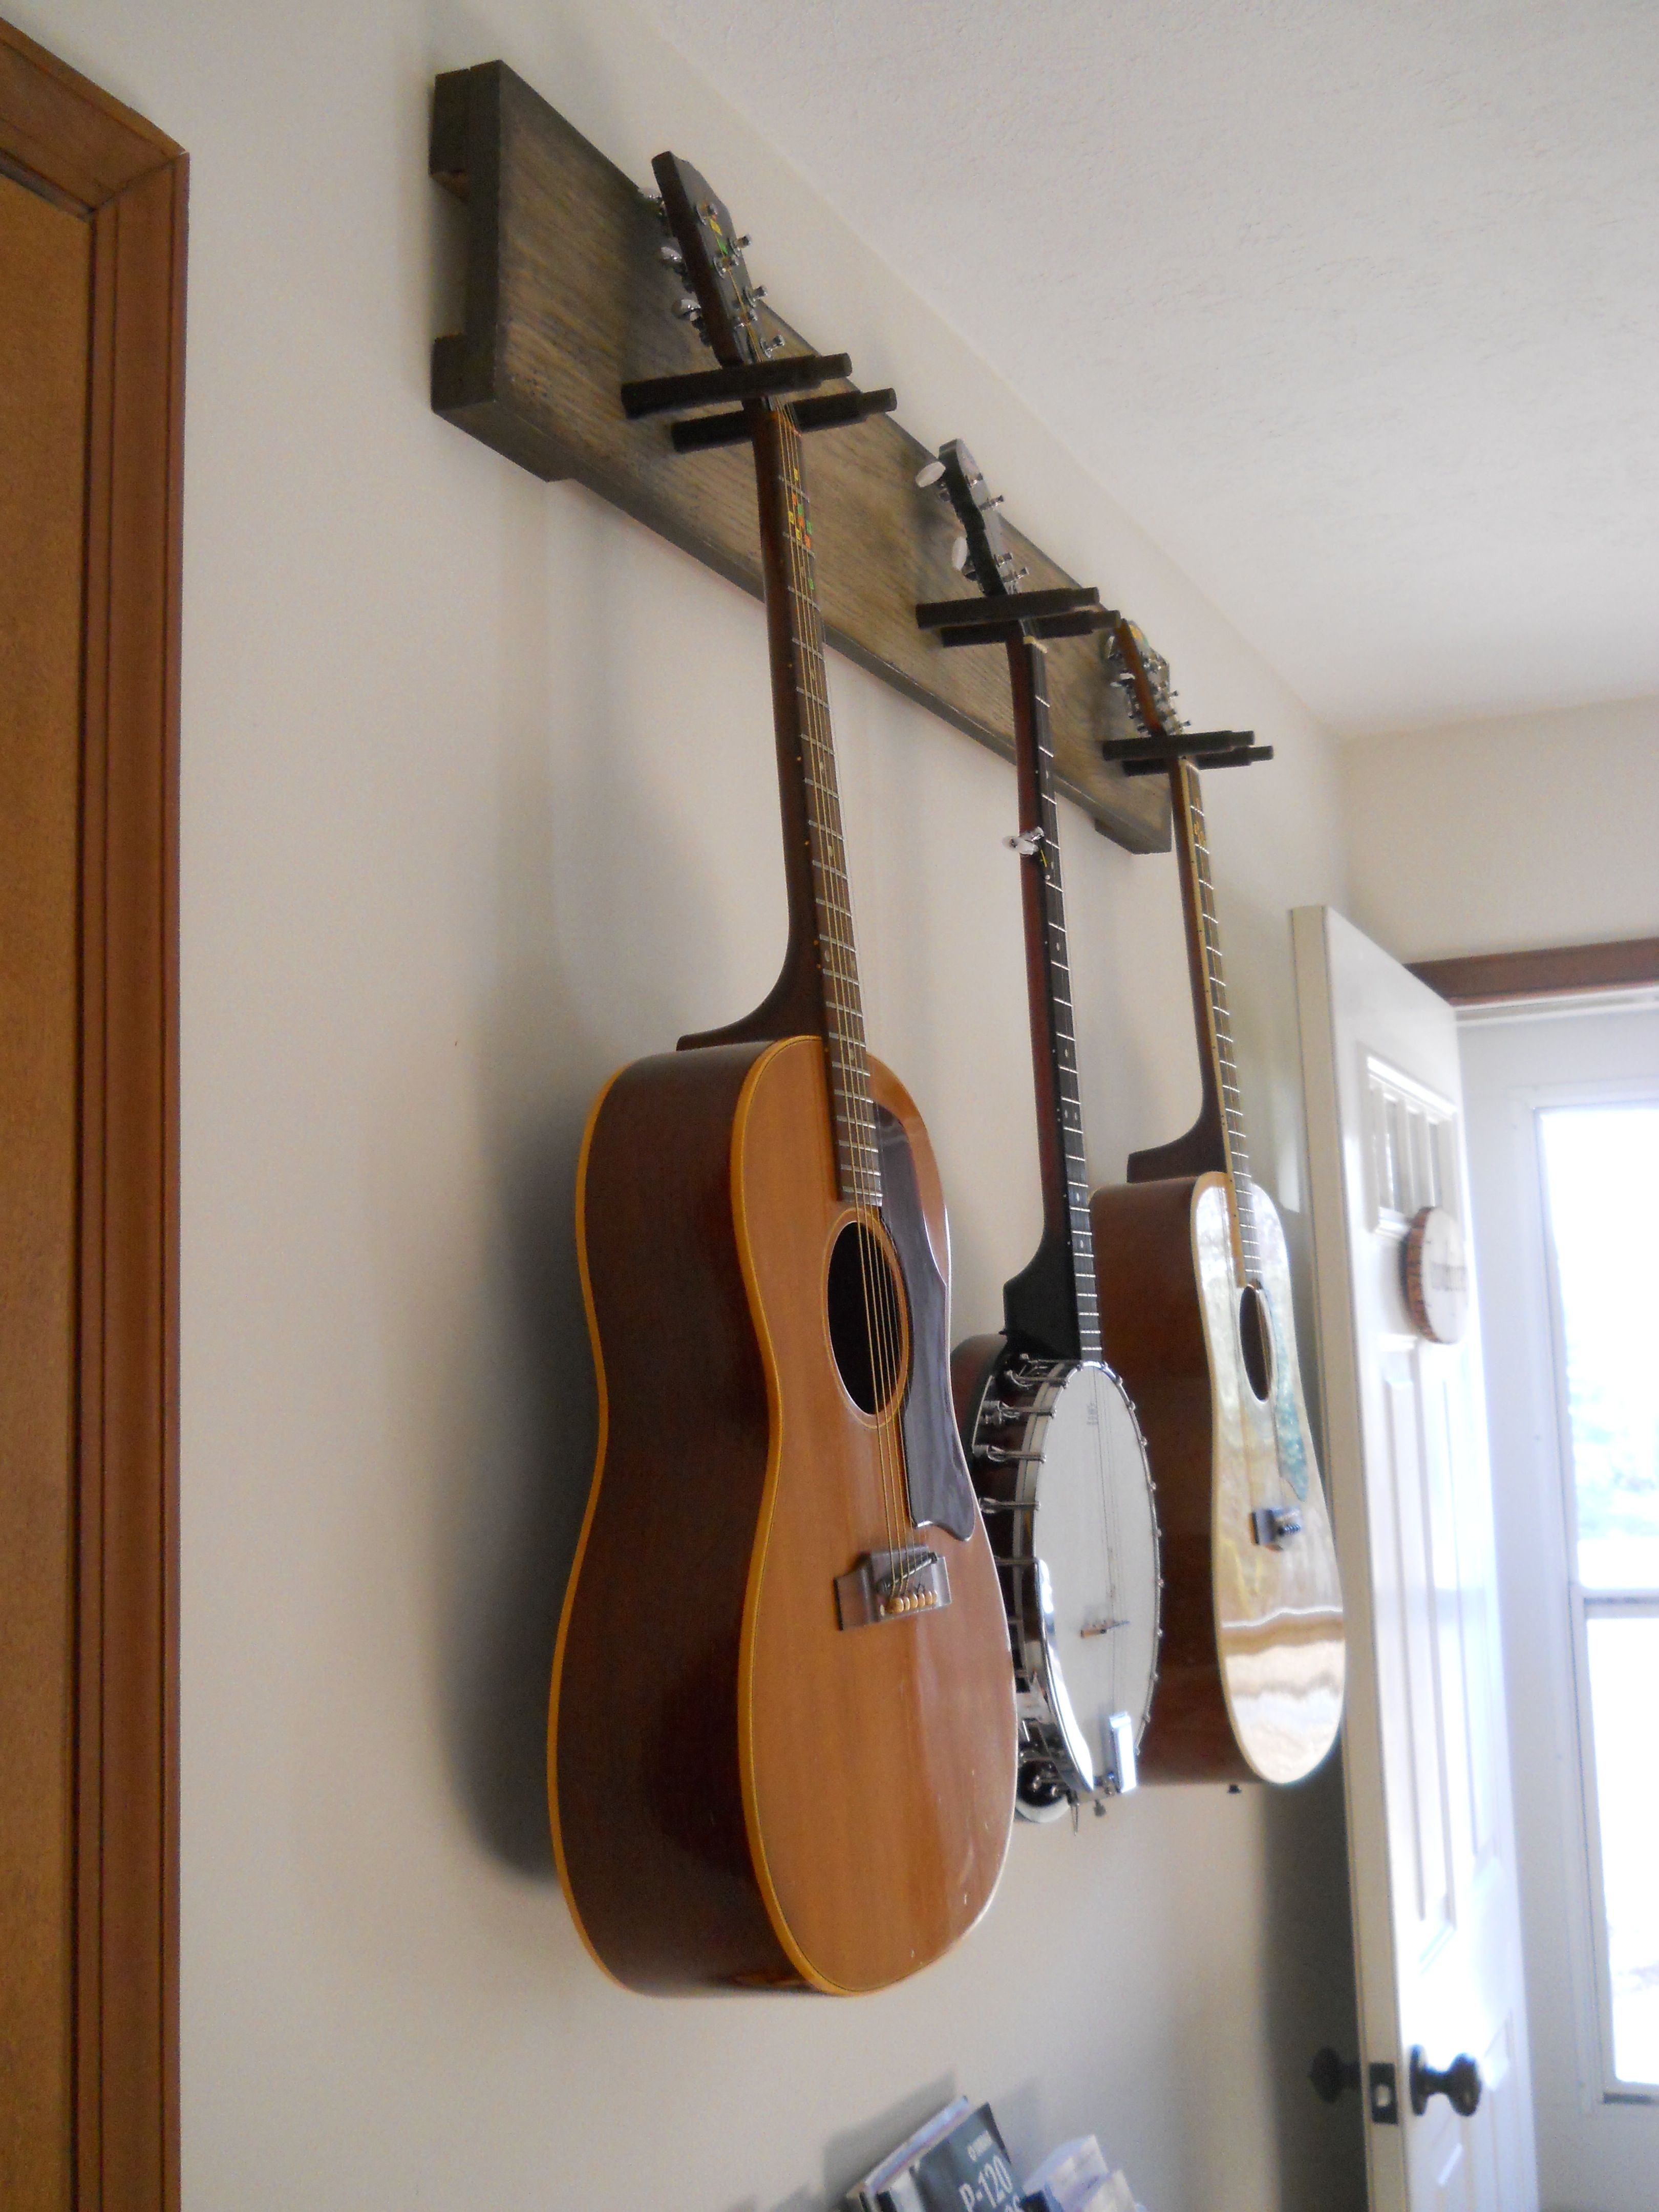 Diy Guitar Hanger Simple Amp Secure We Practice So Much